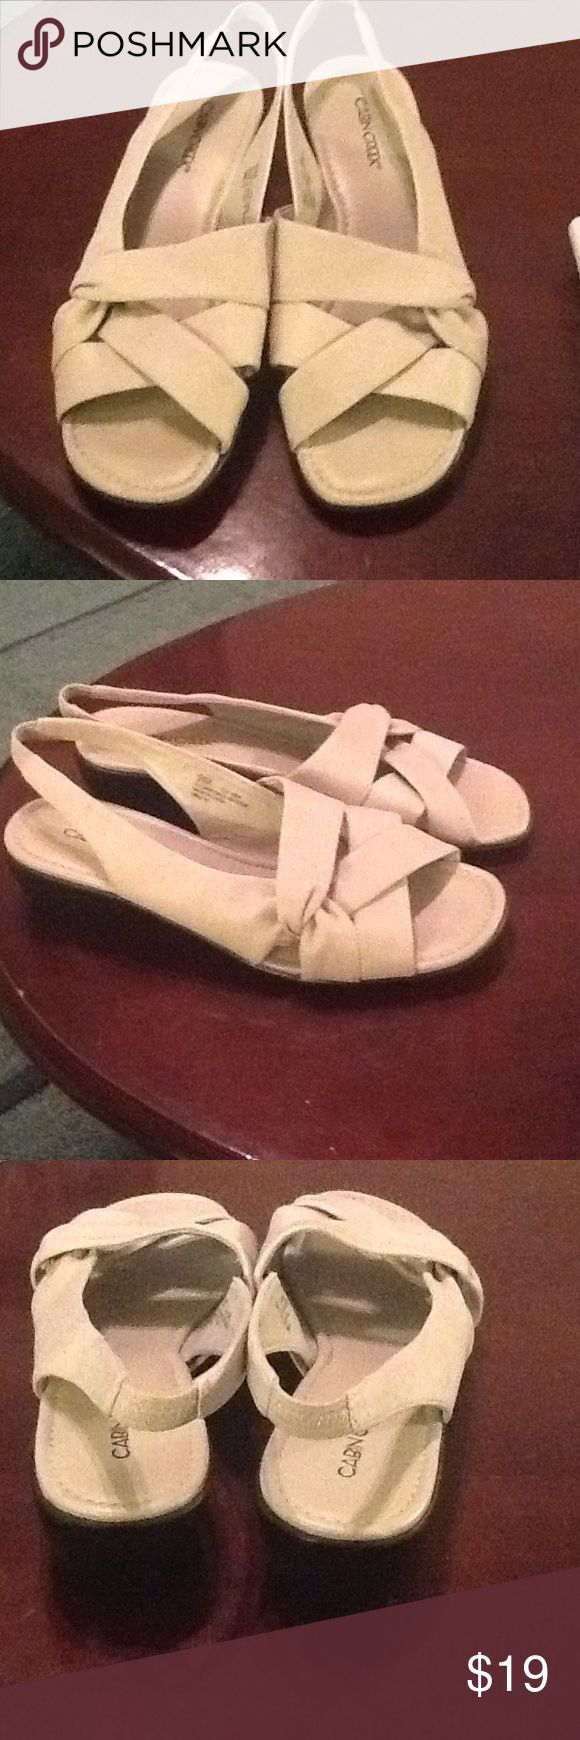 CABIN CREEK BEIGE FLAT SANDALS CABIN CREEK BEIGE FLAT SANDALS SIZE 9M PREOWNED GOOD CONDITION Cabin Creek Shoes Sandals